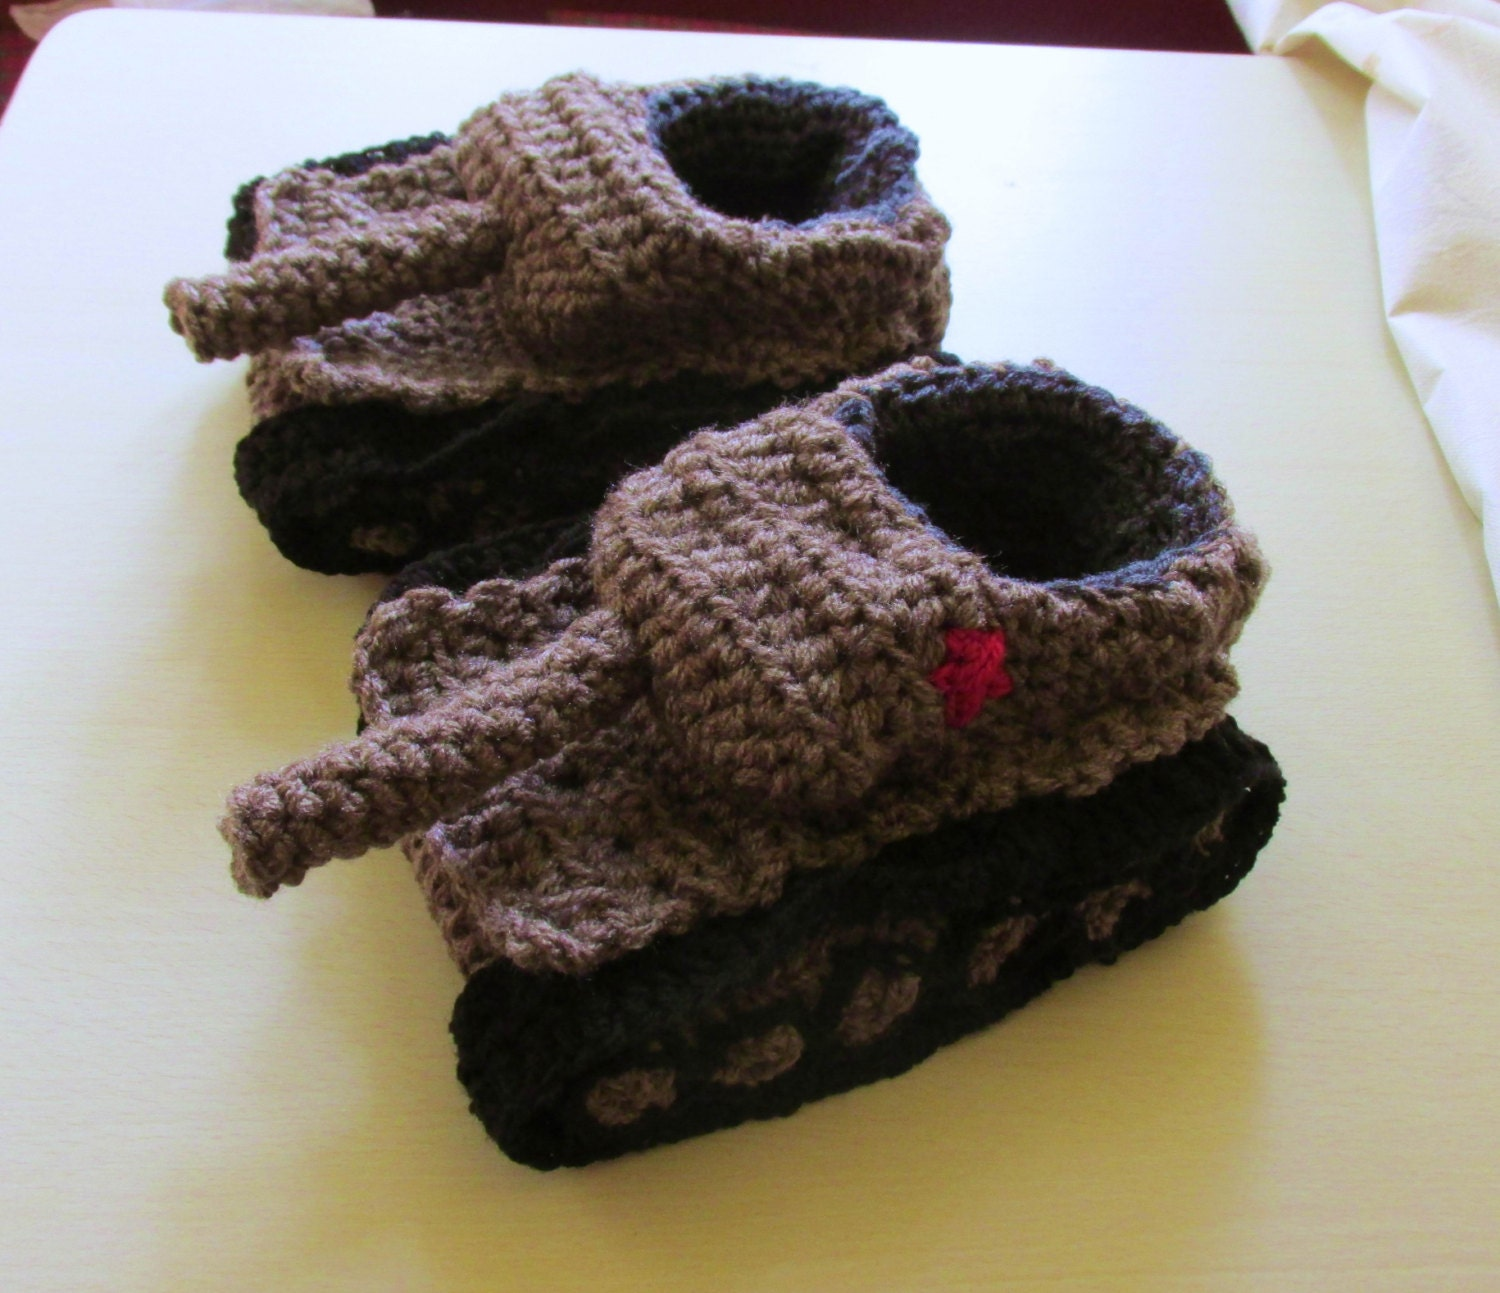 Knitting Pattern For Army Tank Slippers : Tank slippers crochet tank Slippers panzer slippers Panzer